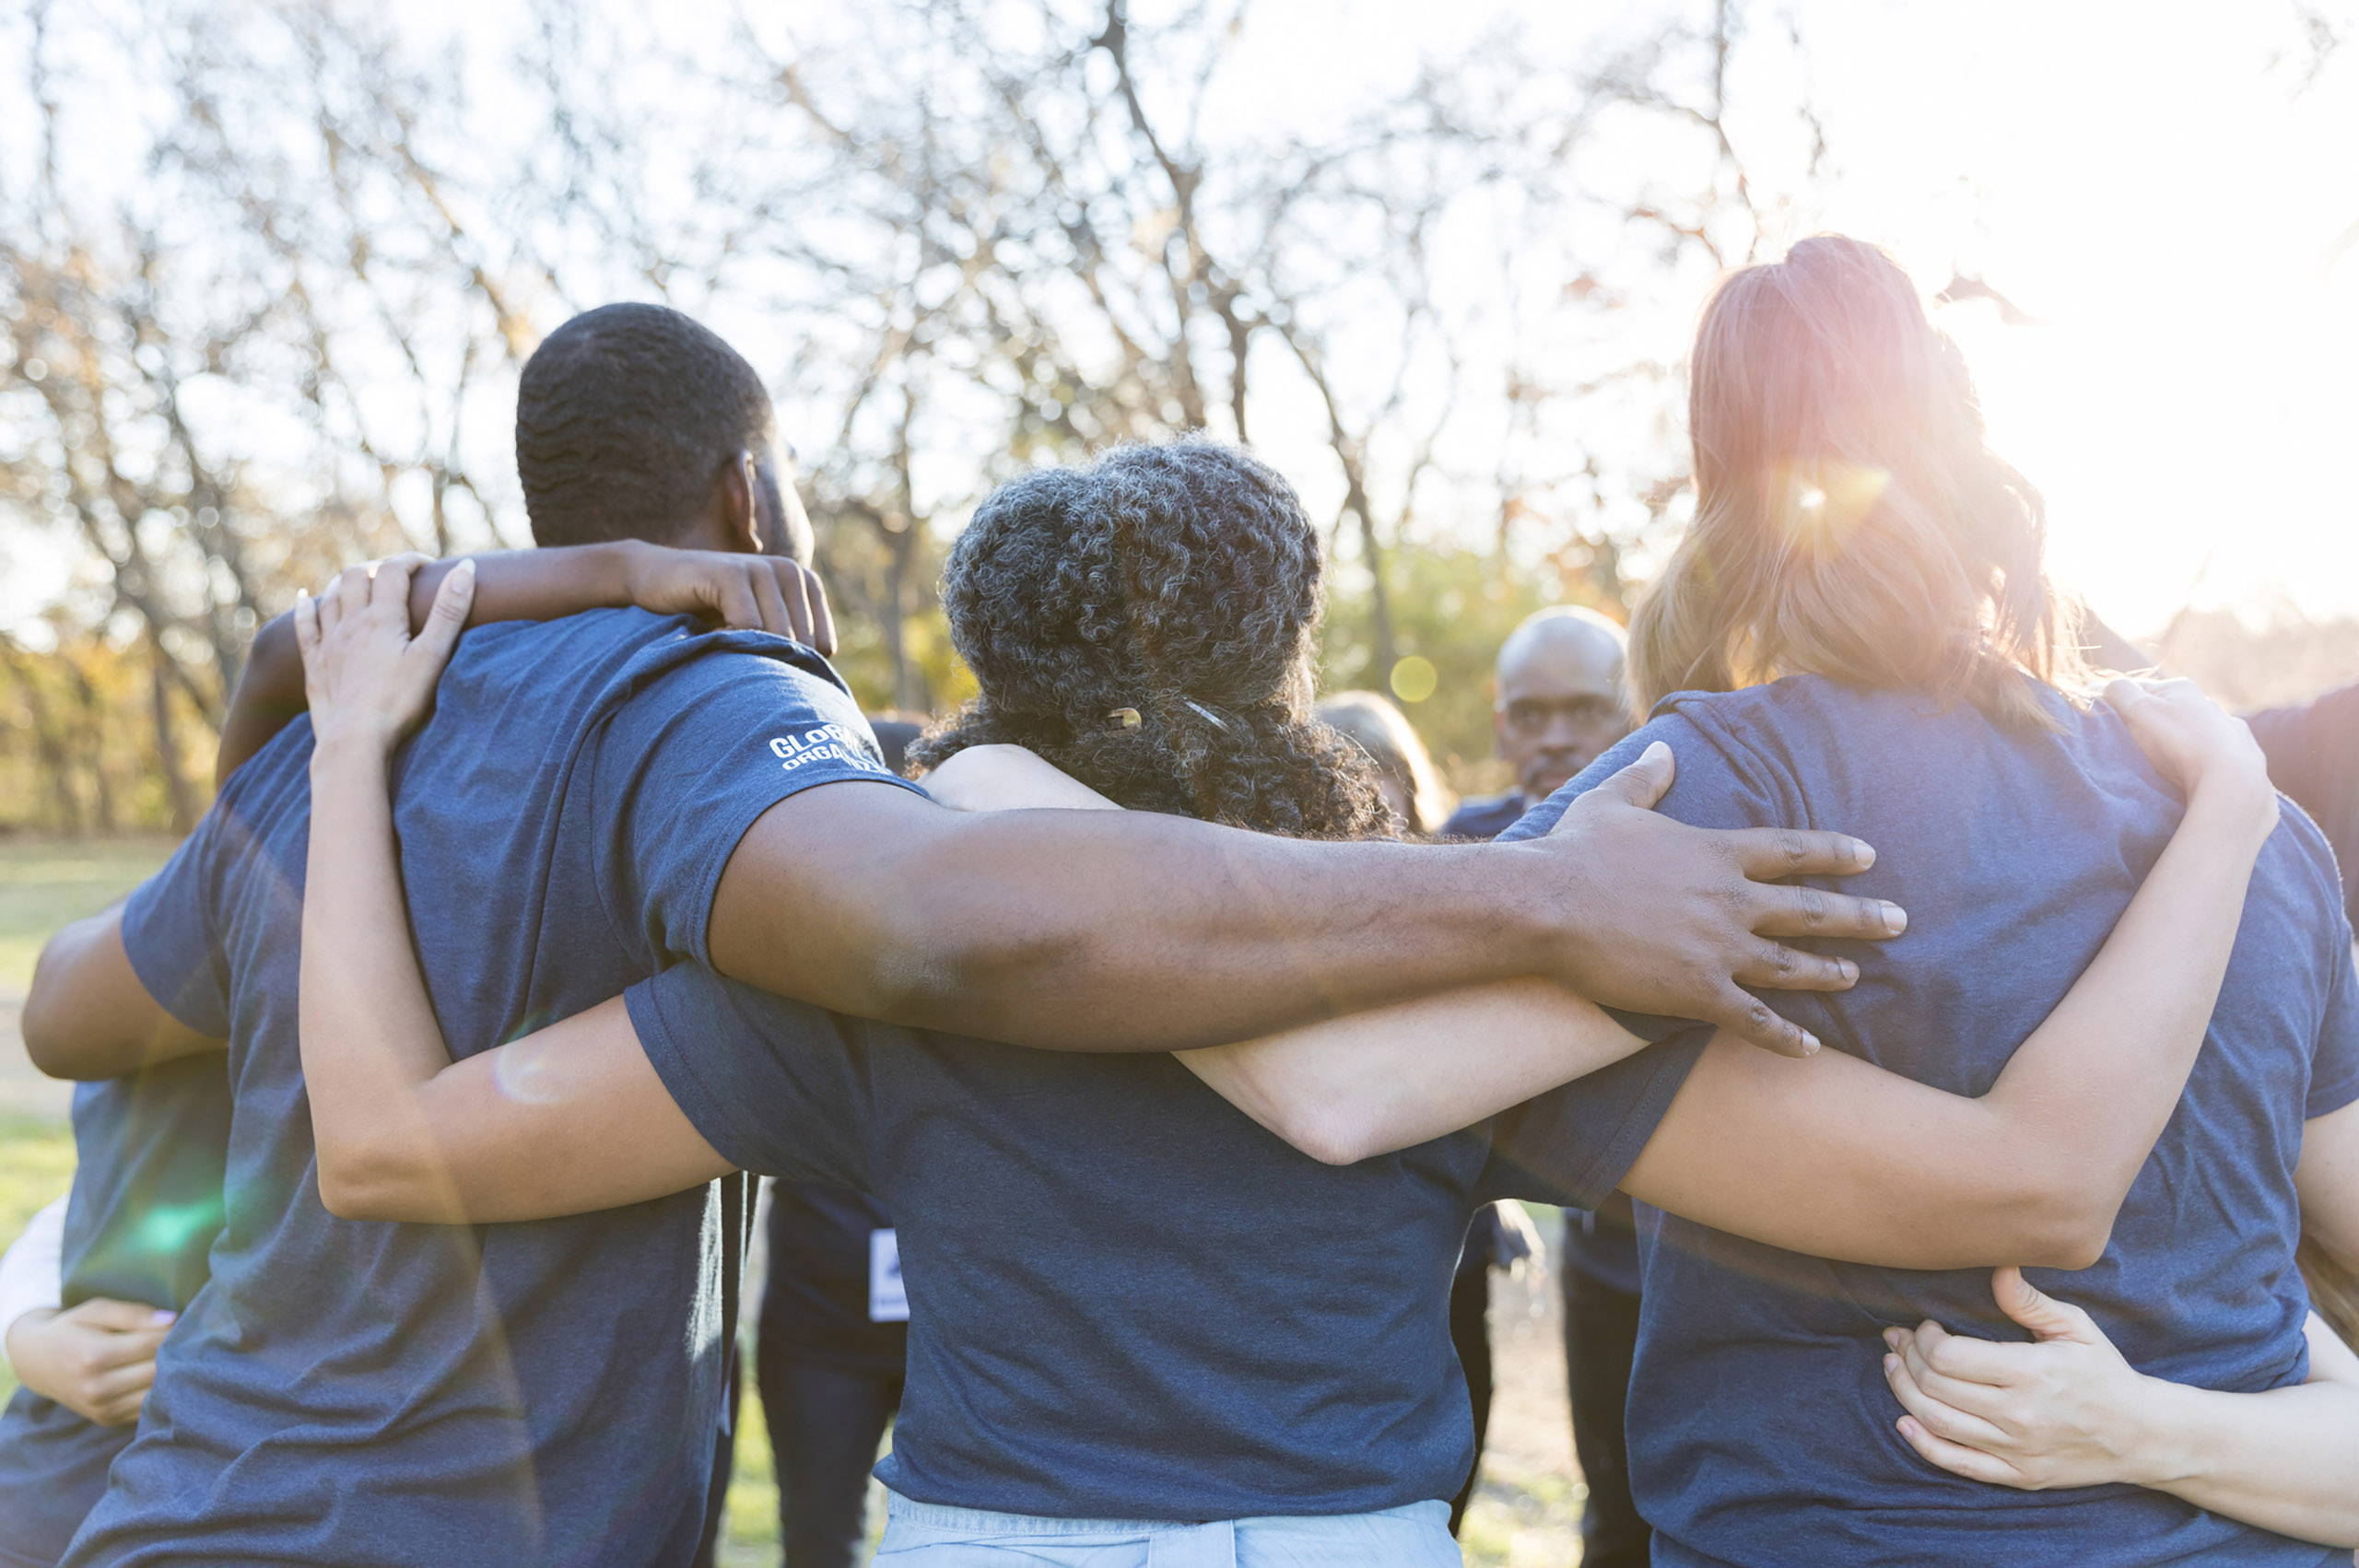 rear view of a group of people with arms around eachother